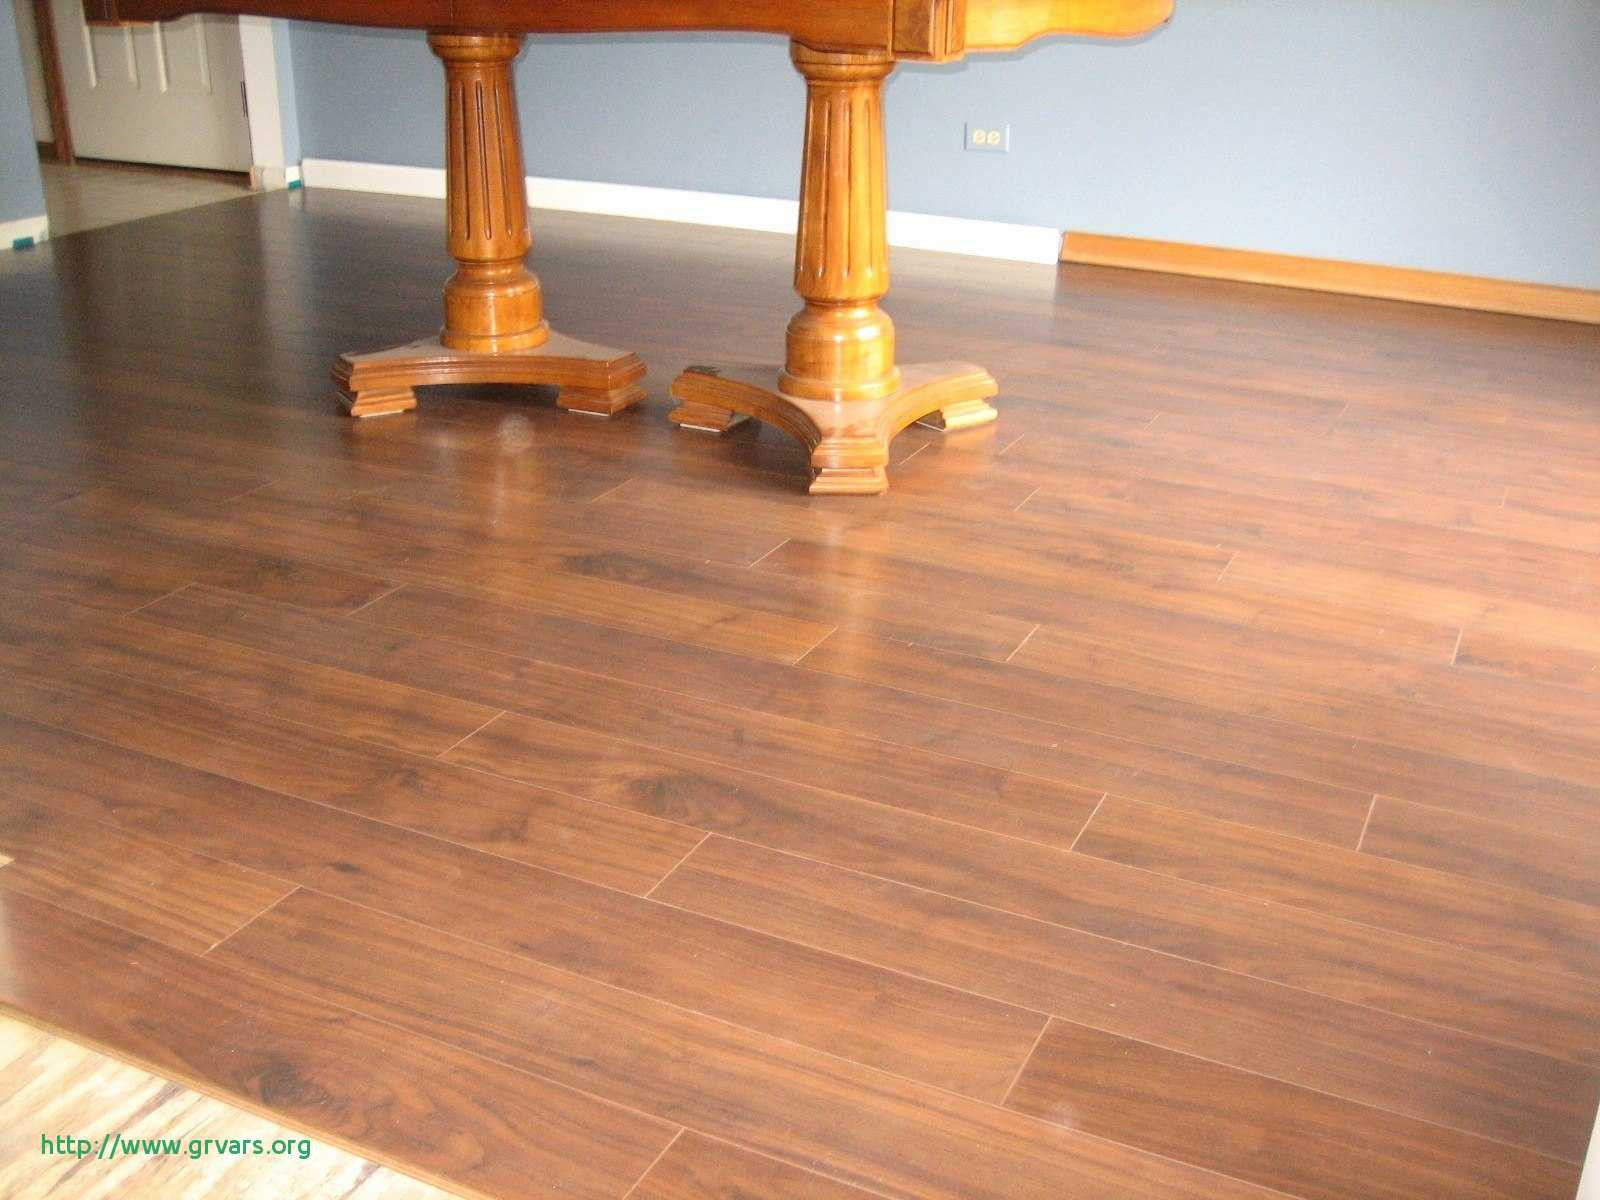 how to fix buckled hardwood floor of 16 inspirant how to fix buckling hardwood floors ideas blog within how to fix buckling hardwood floors inspirant how to fix buckling hardwood floors podemosleganes